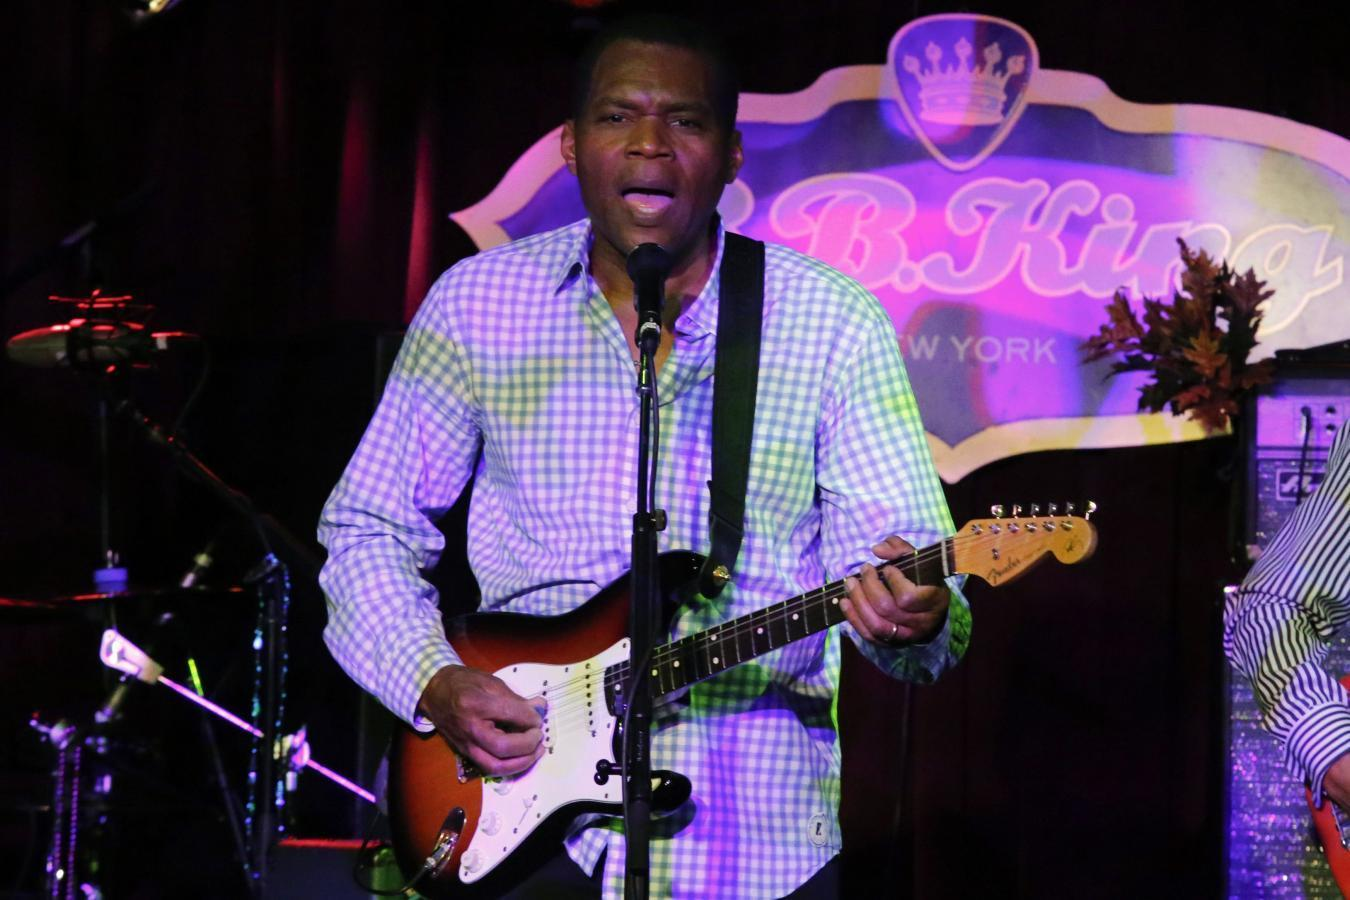 A soulful Robert Cray tunes in to the sounds of his youth